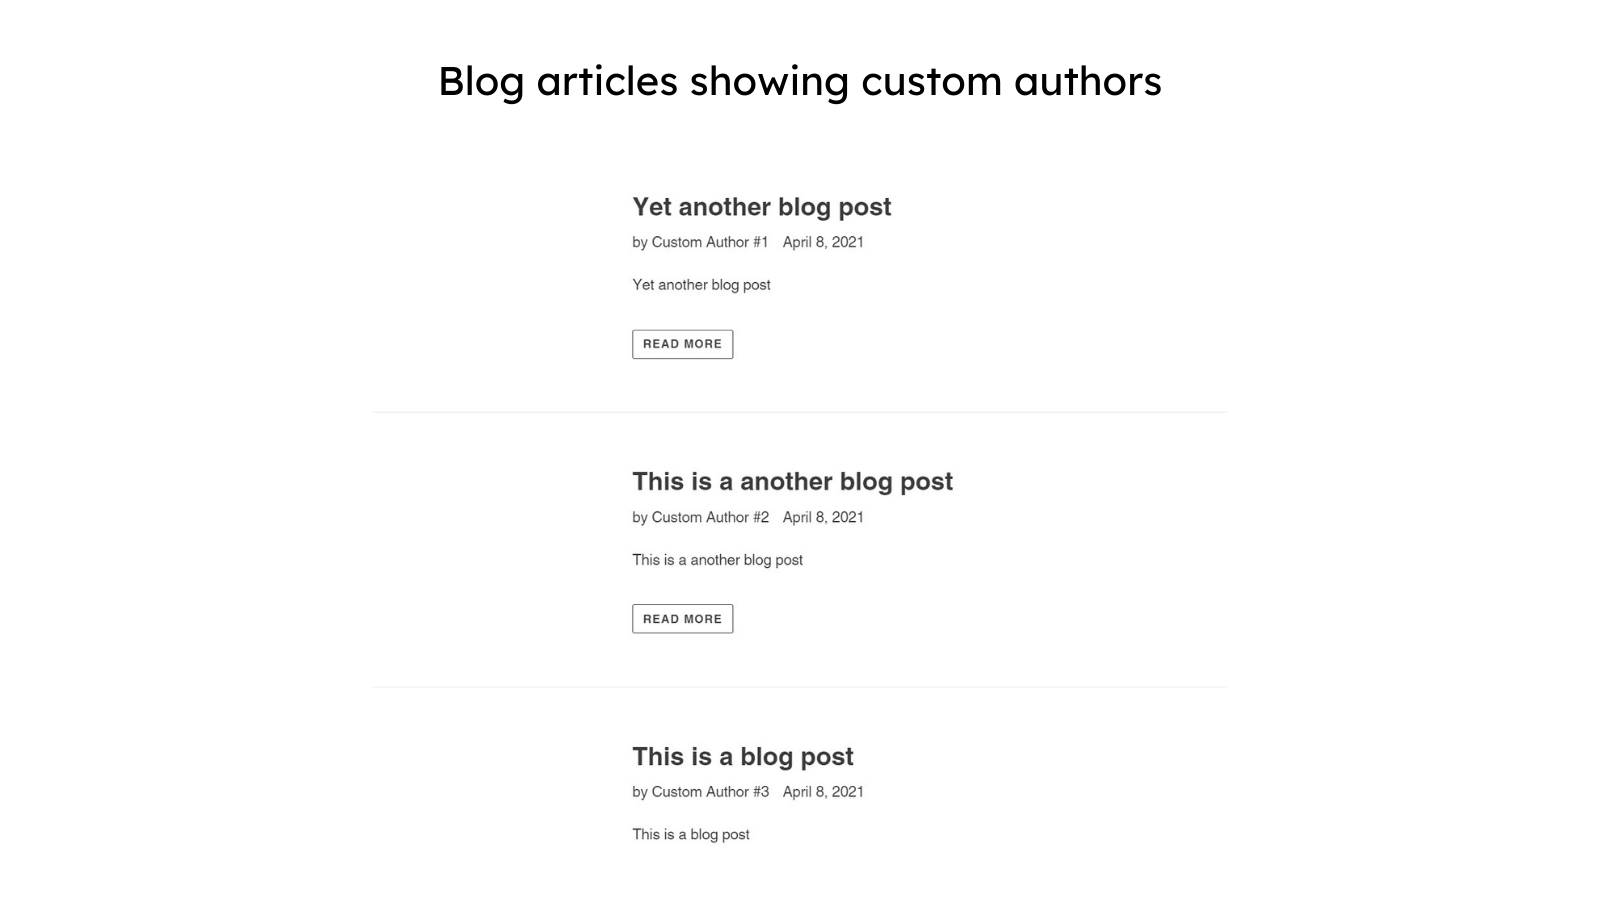 Blog articles showing custom authors